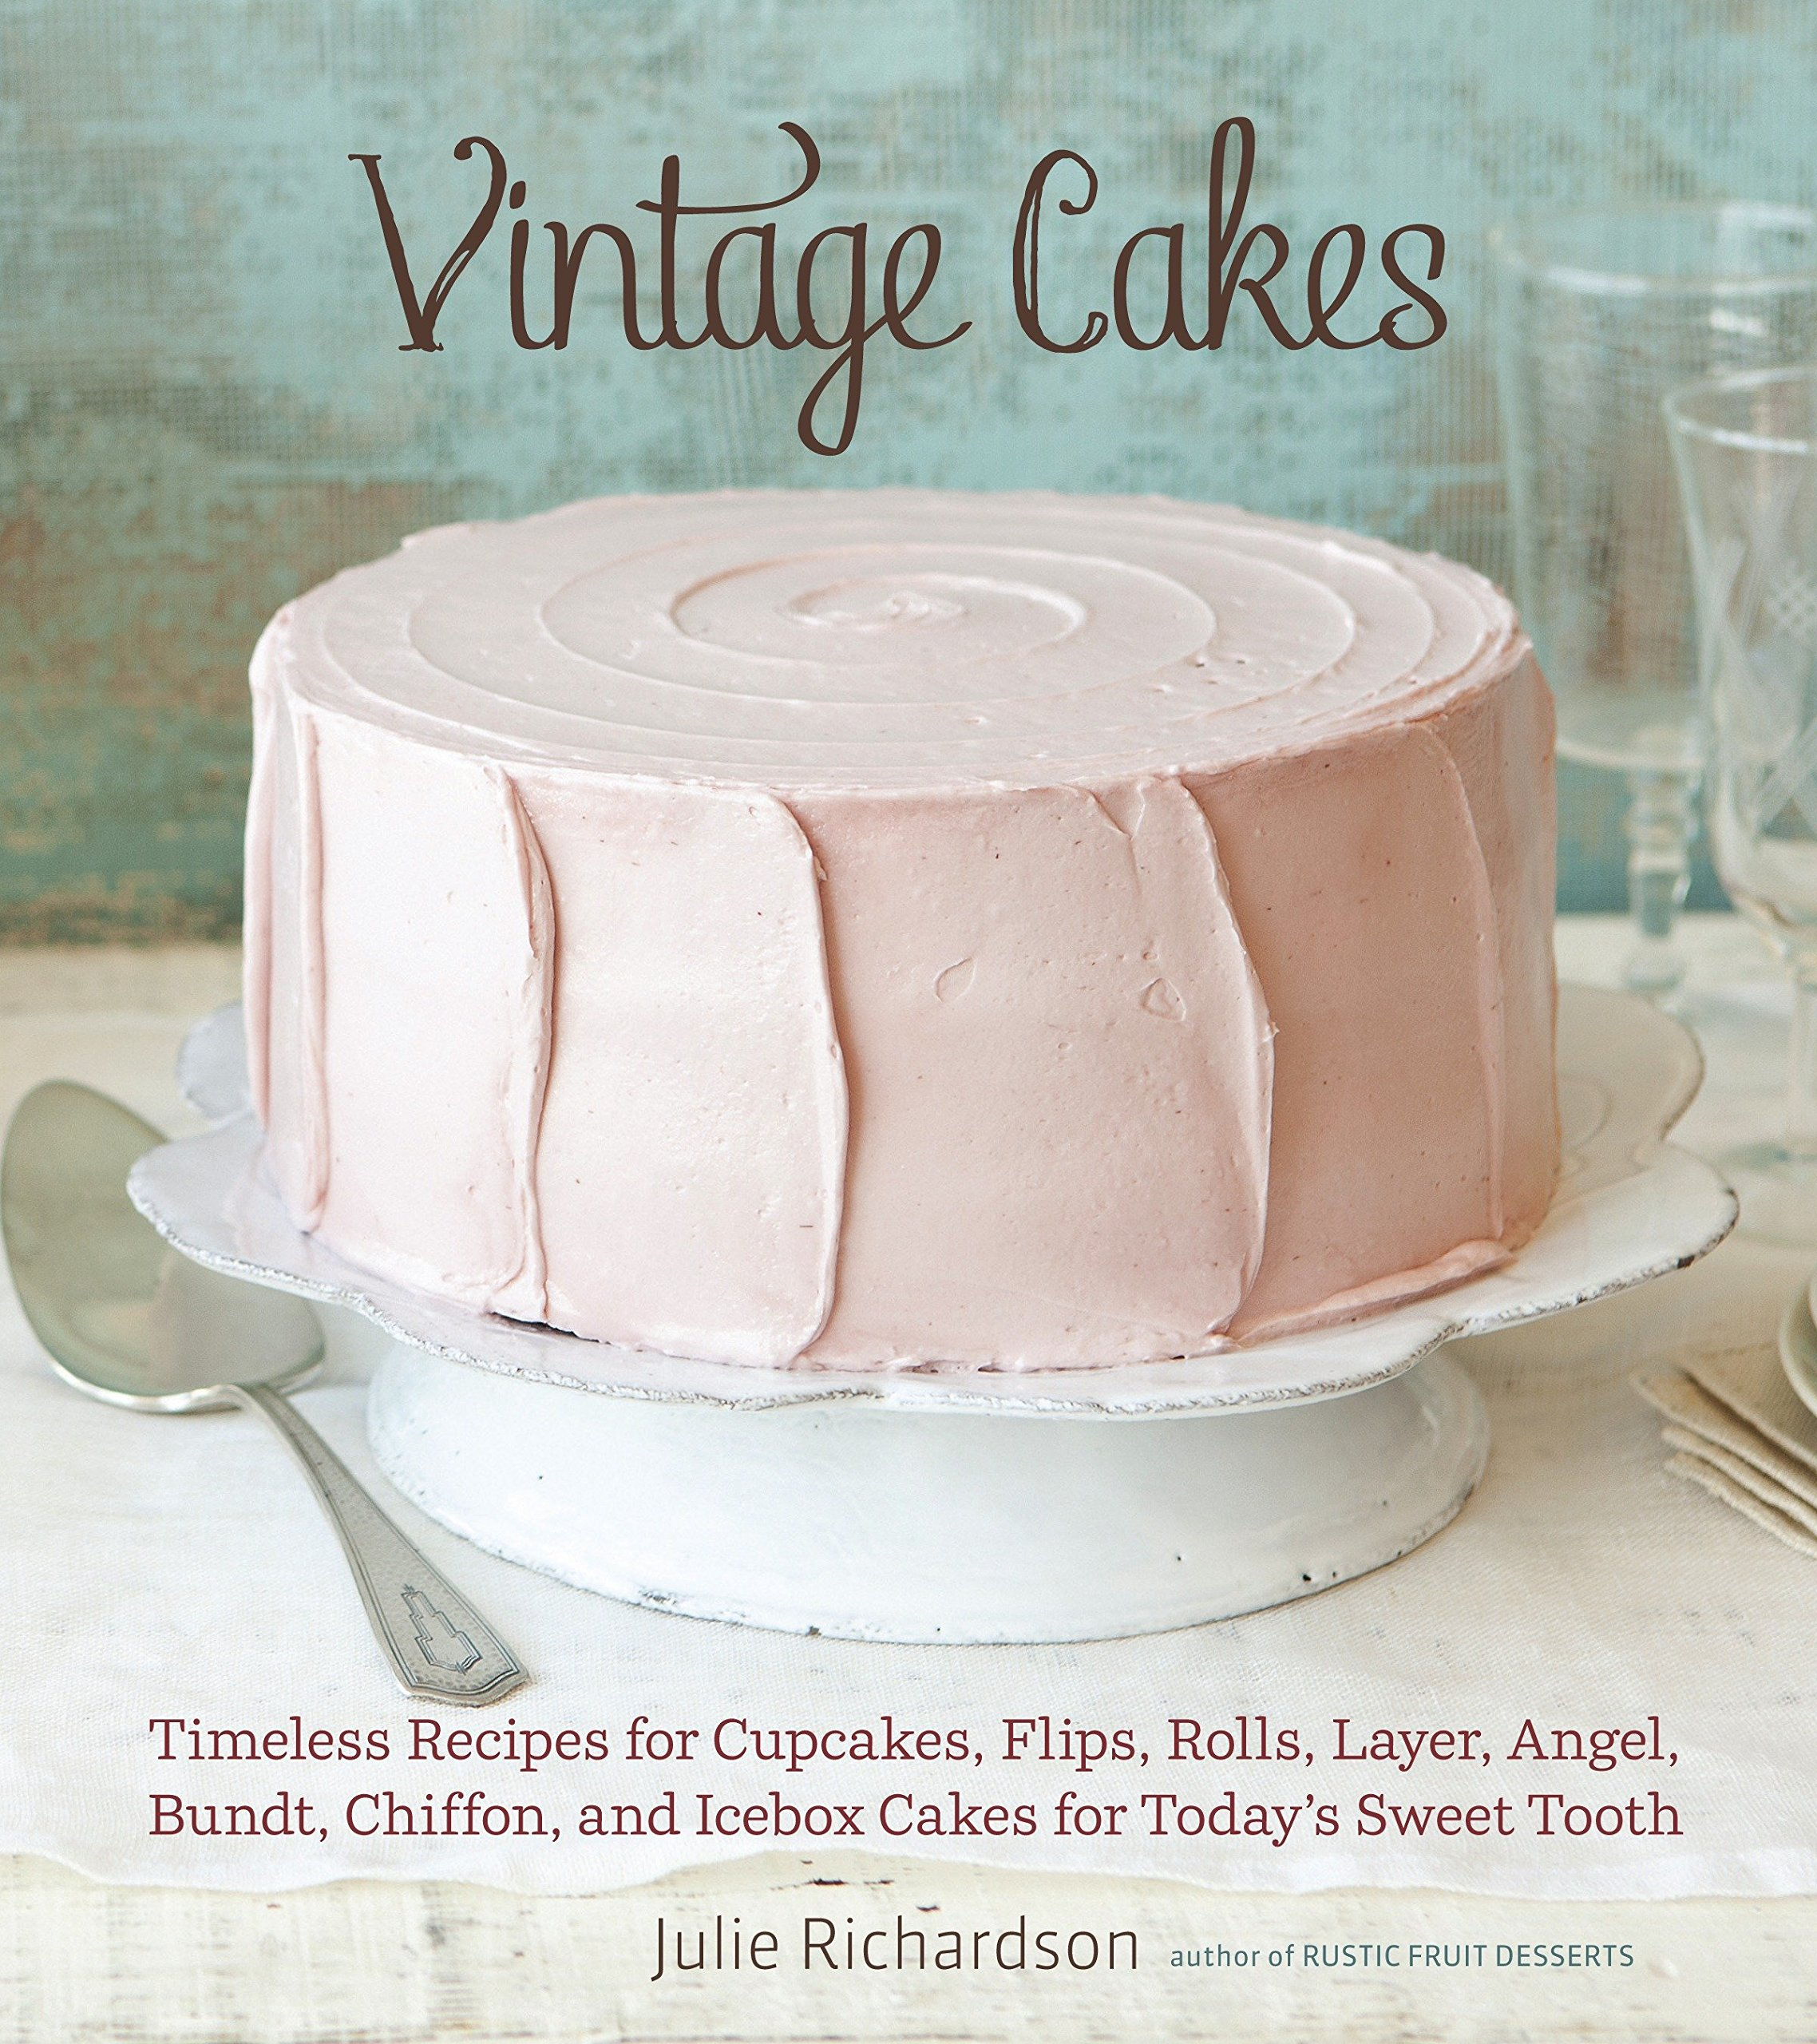 Vintage Cakes: Timeless Recipes for Cupcakes, Flips, Rolls, Layer, Angel, Bundt, Chiffon, and Icebox Cakes for Todays Sweet Tooth: Amazon.es: Julie ...